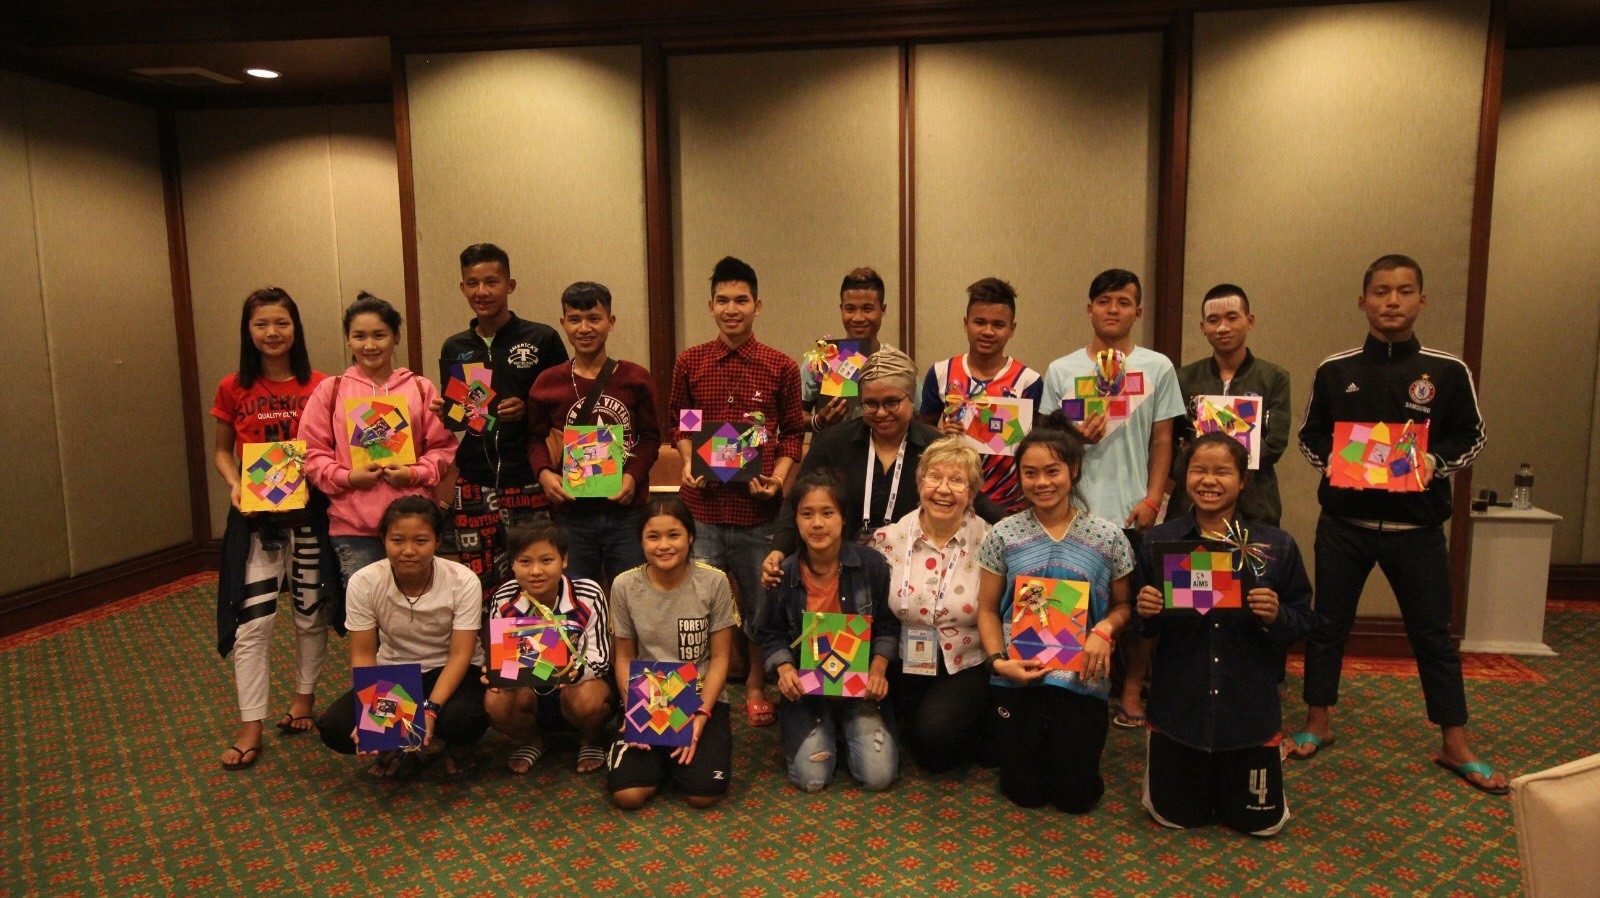 IFMA and AIMS have invited displaced children to create sport-related crafts©IFMA